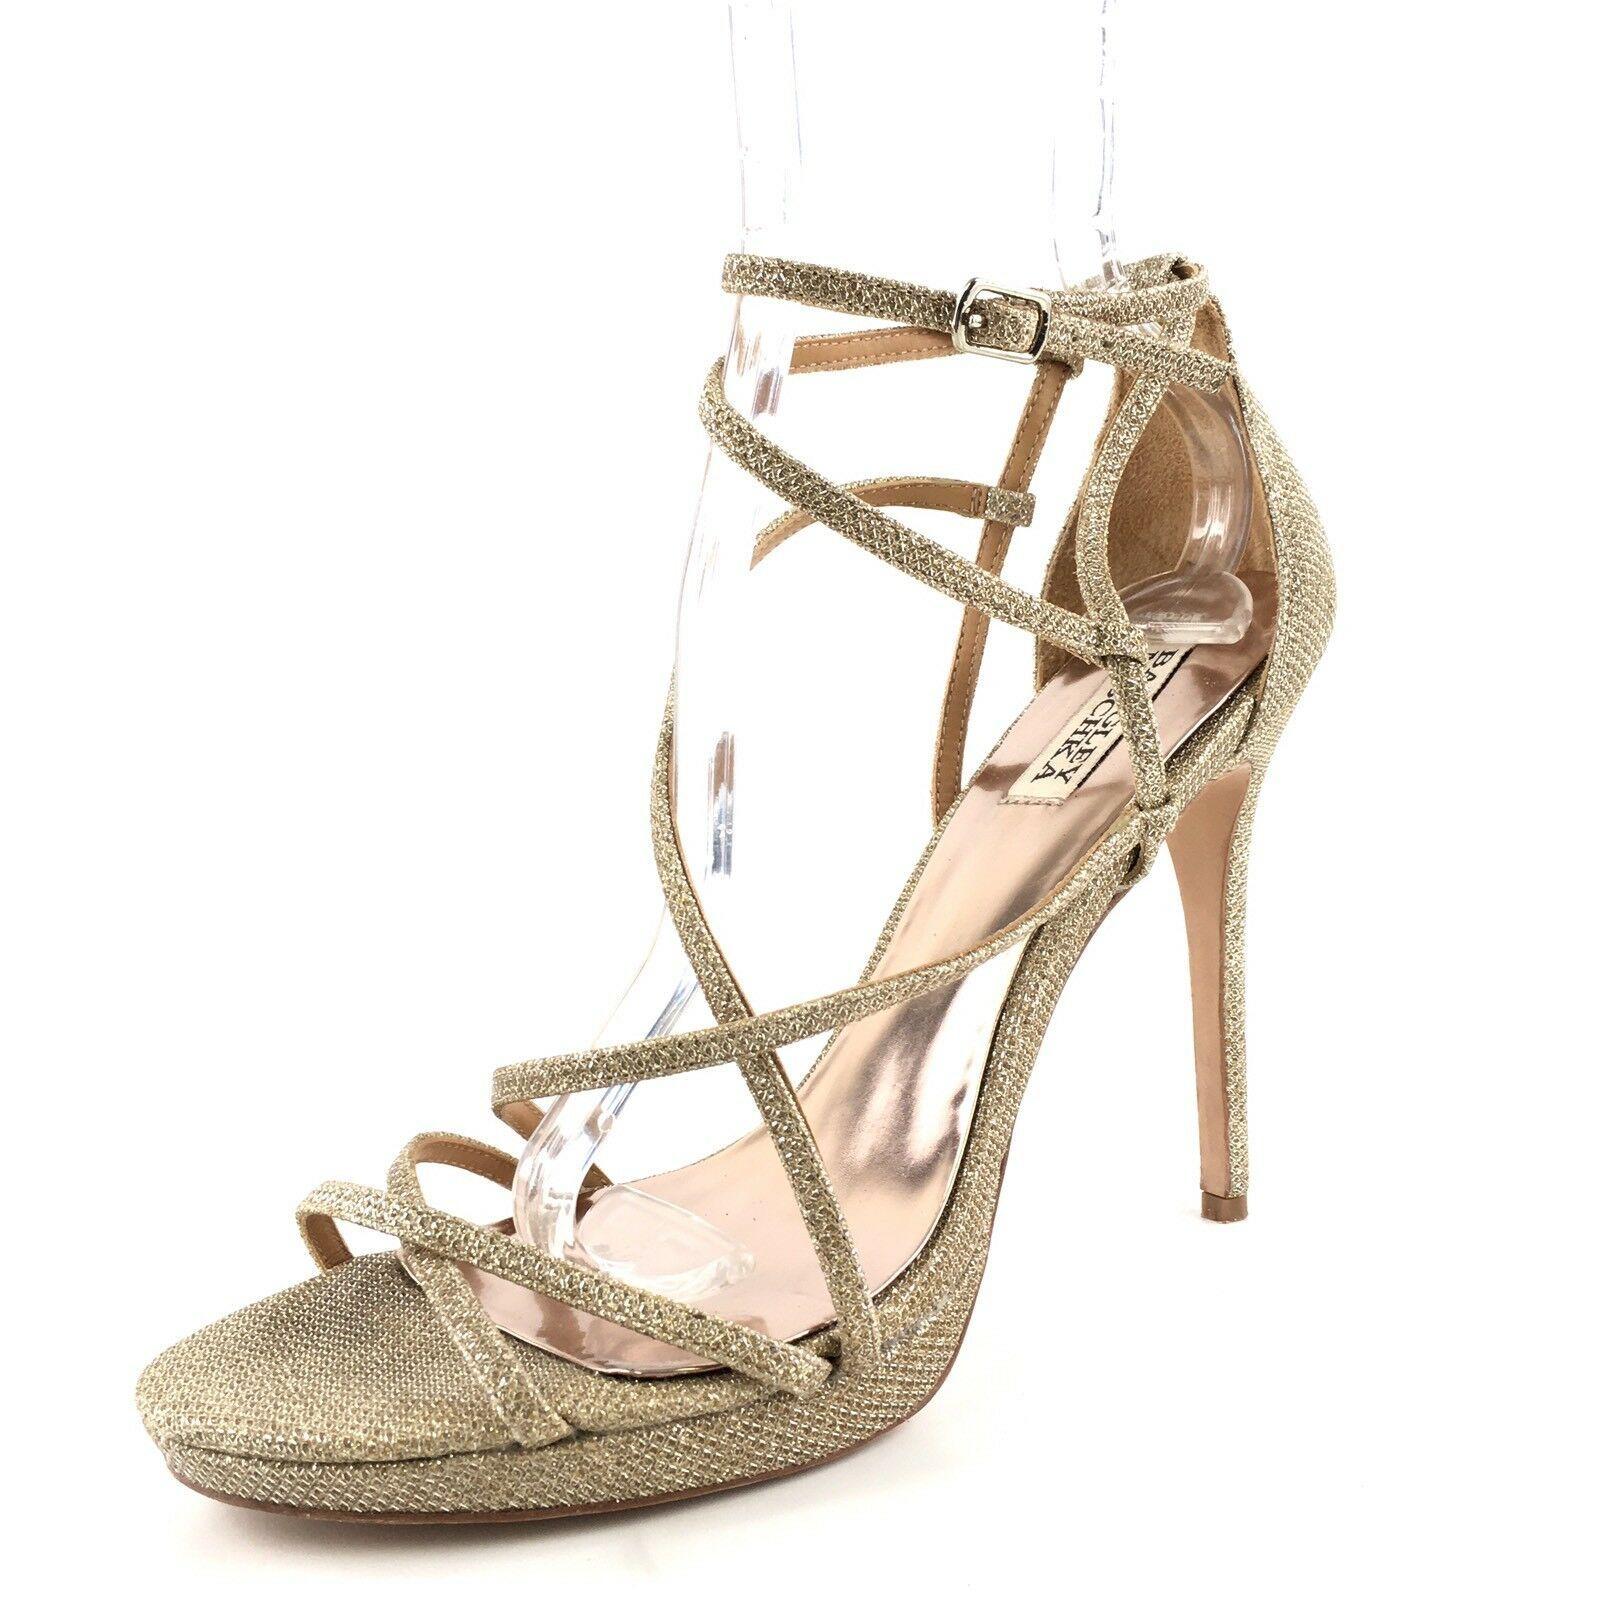 Badgley Mischka Landmark Gold Metallic Strappy Dress Sandales Damenschuhe Größe 10 M